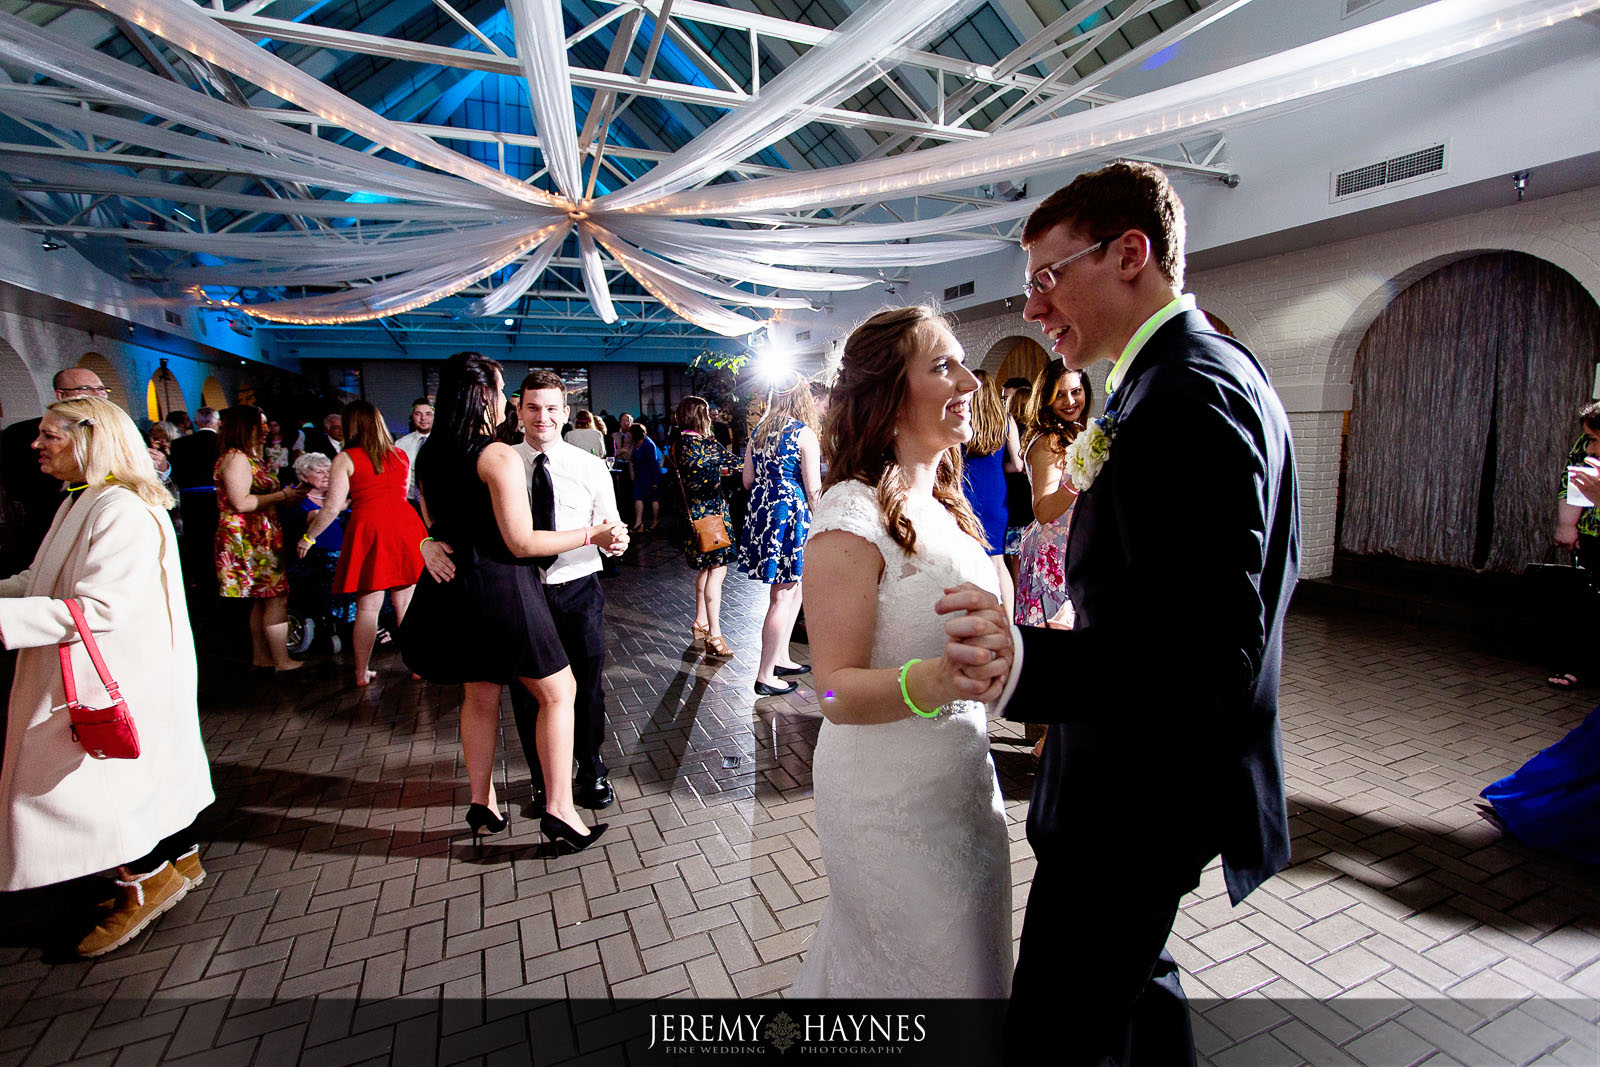 jeremy-haynes-photography-wedding-pipers-at-the-marott-indianapolis.jpg